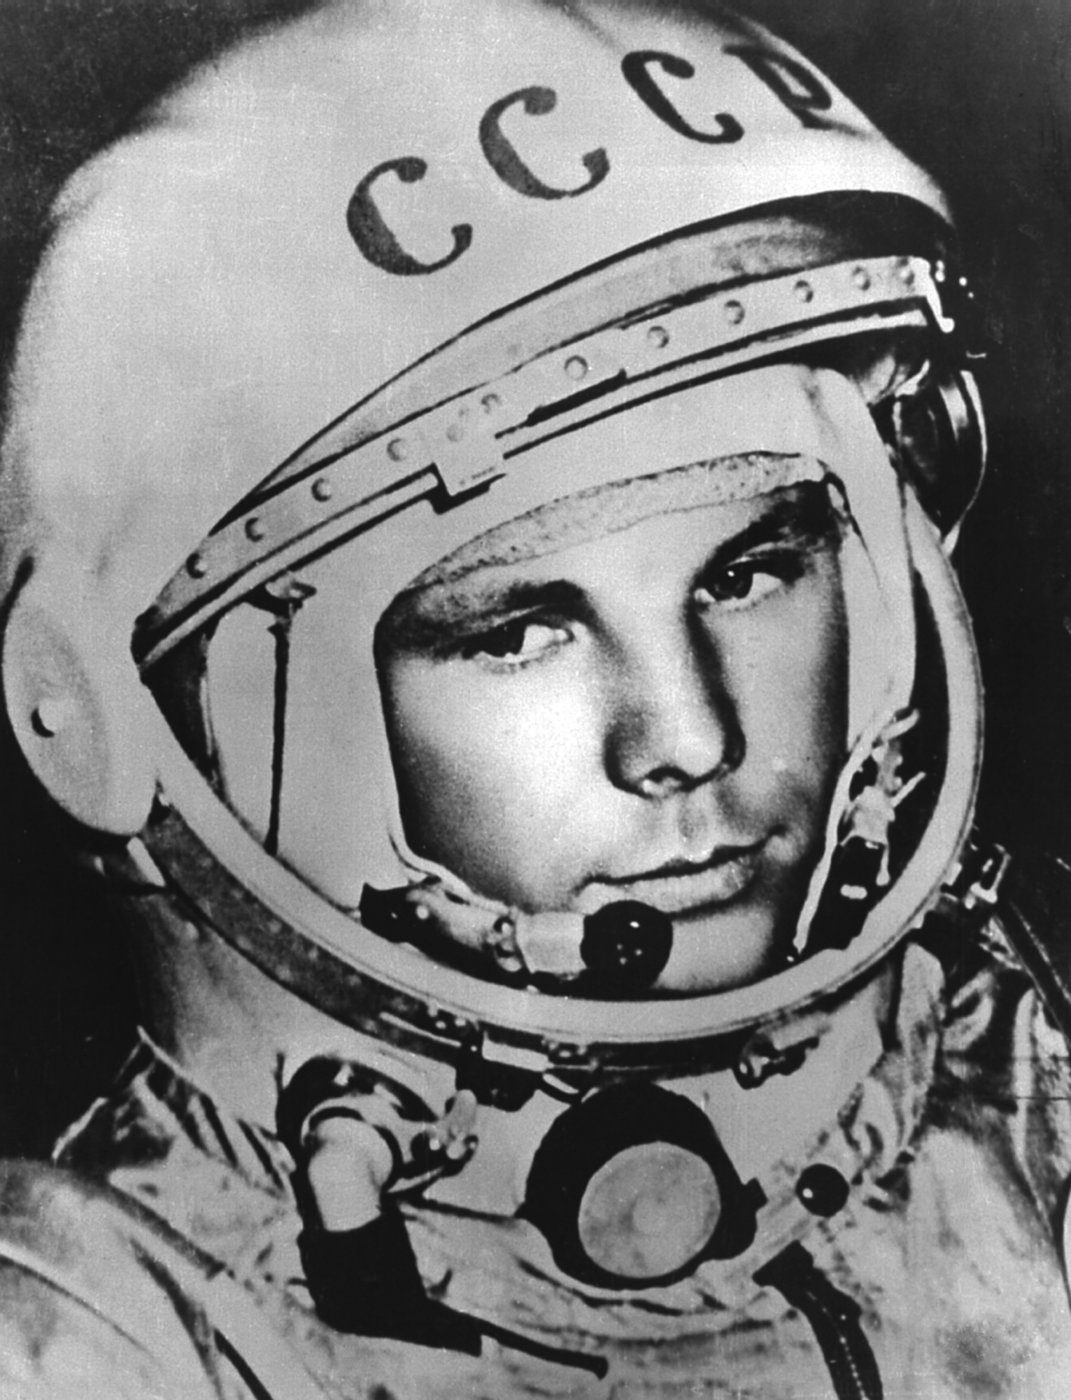 57 Years Ago the first human traveled to space: Yuri Gagarin (Rava Special)